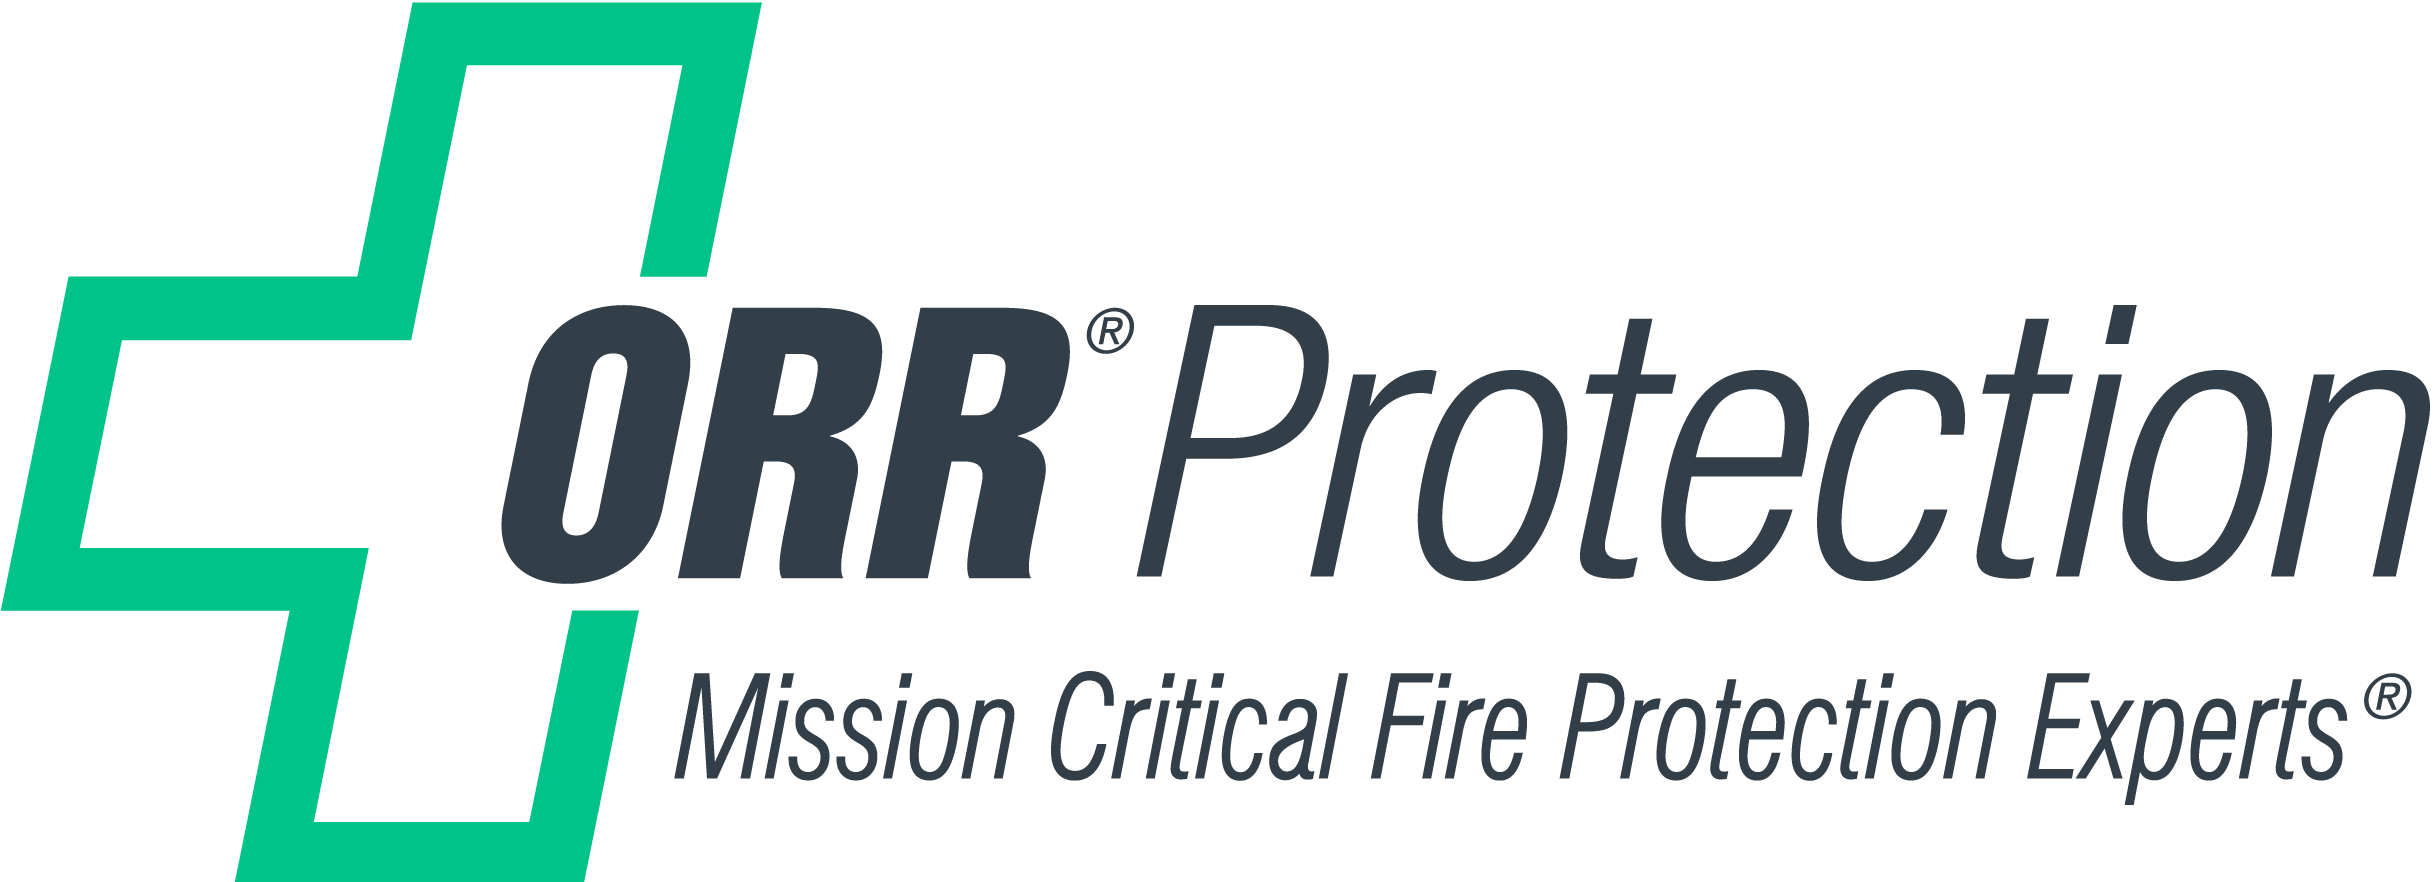 ORR Protection